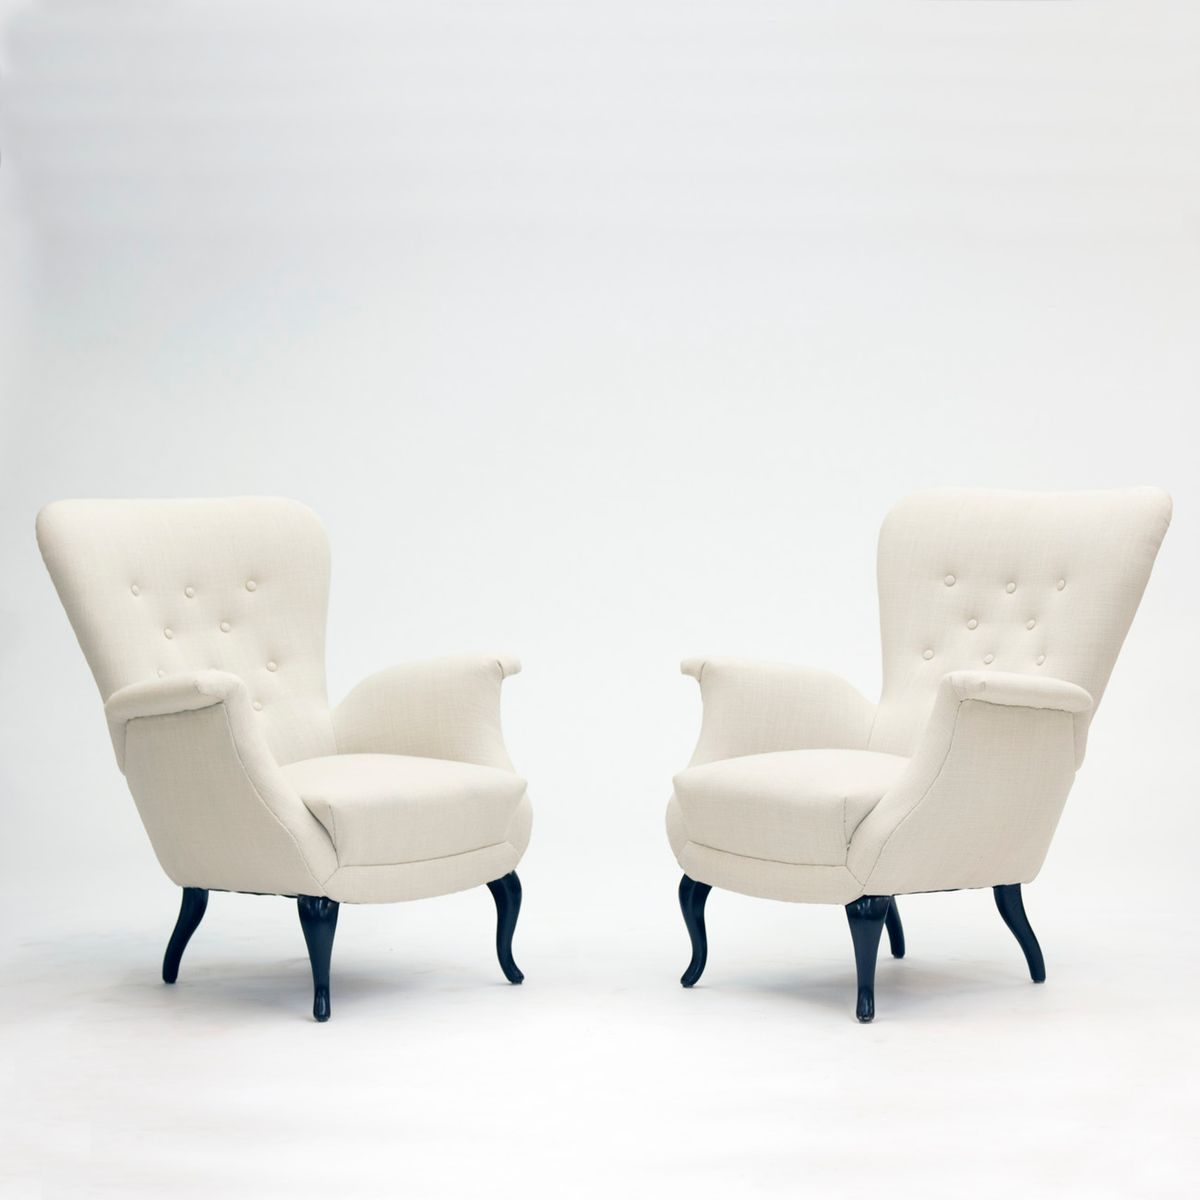 White Lounge Chairs from S M Wincrantz 1950s Set of 2 for sale at Pamono